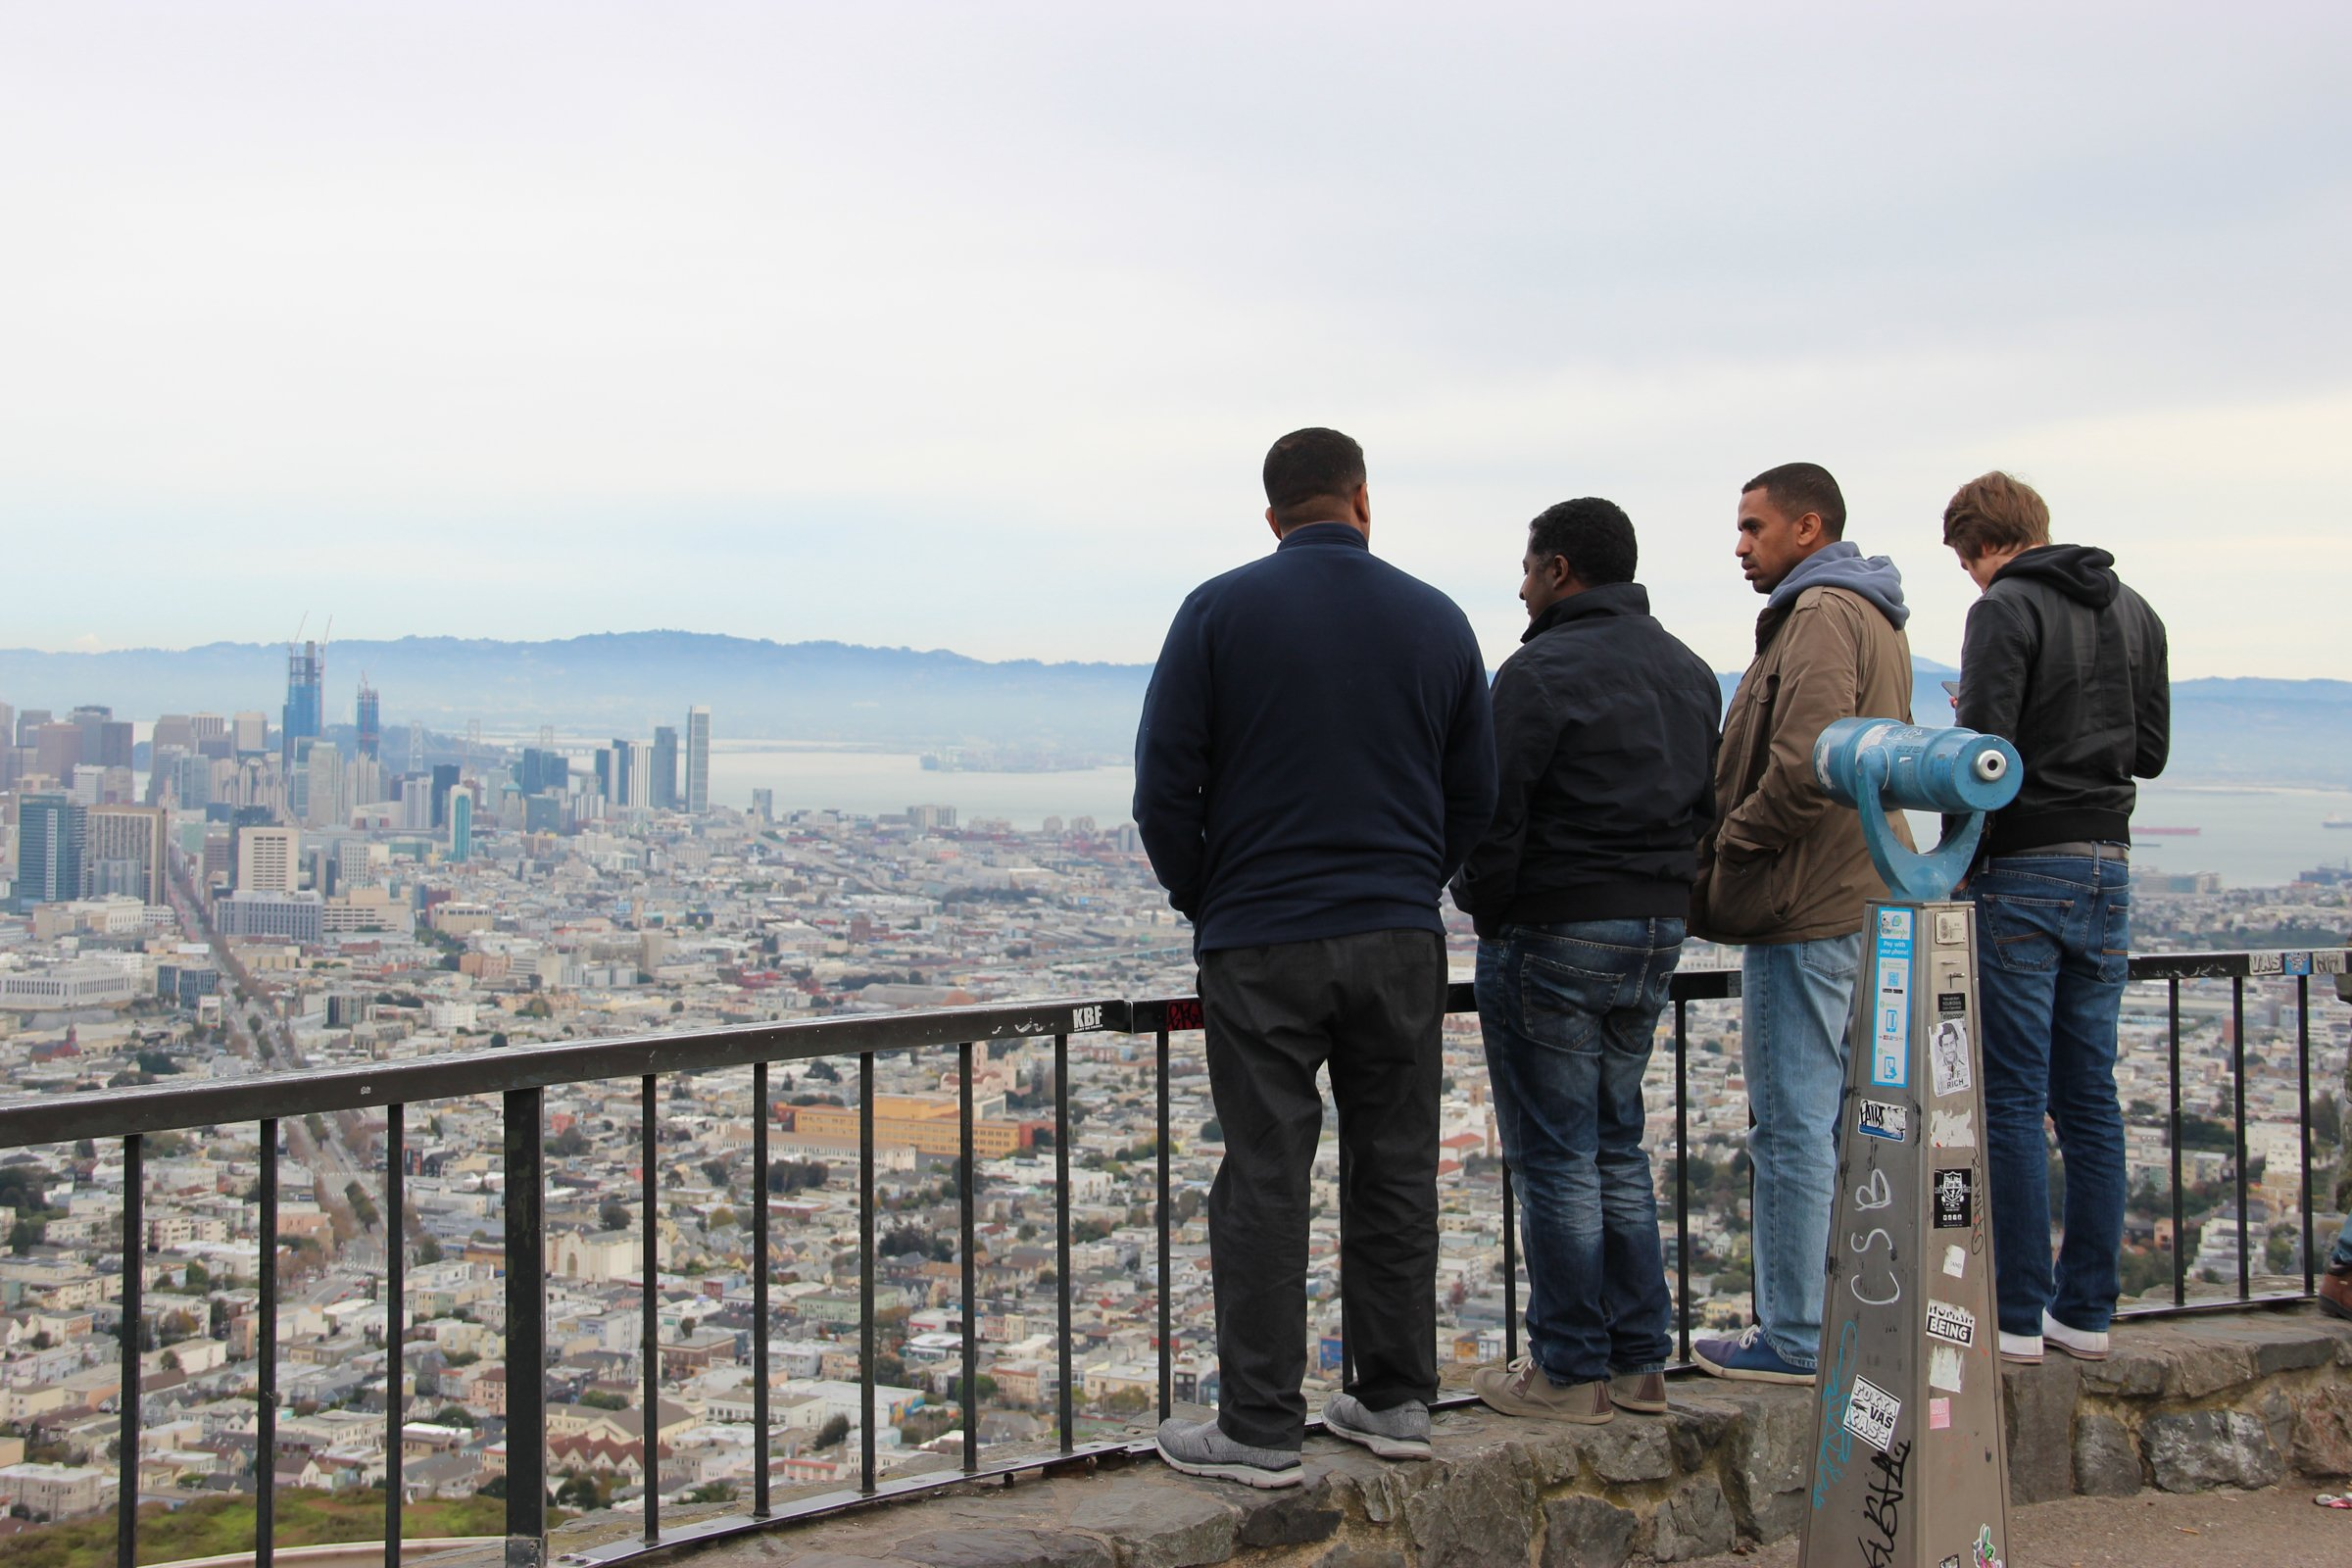 Men Looking Out Over City